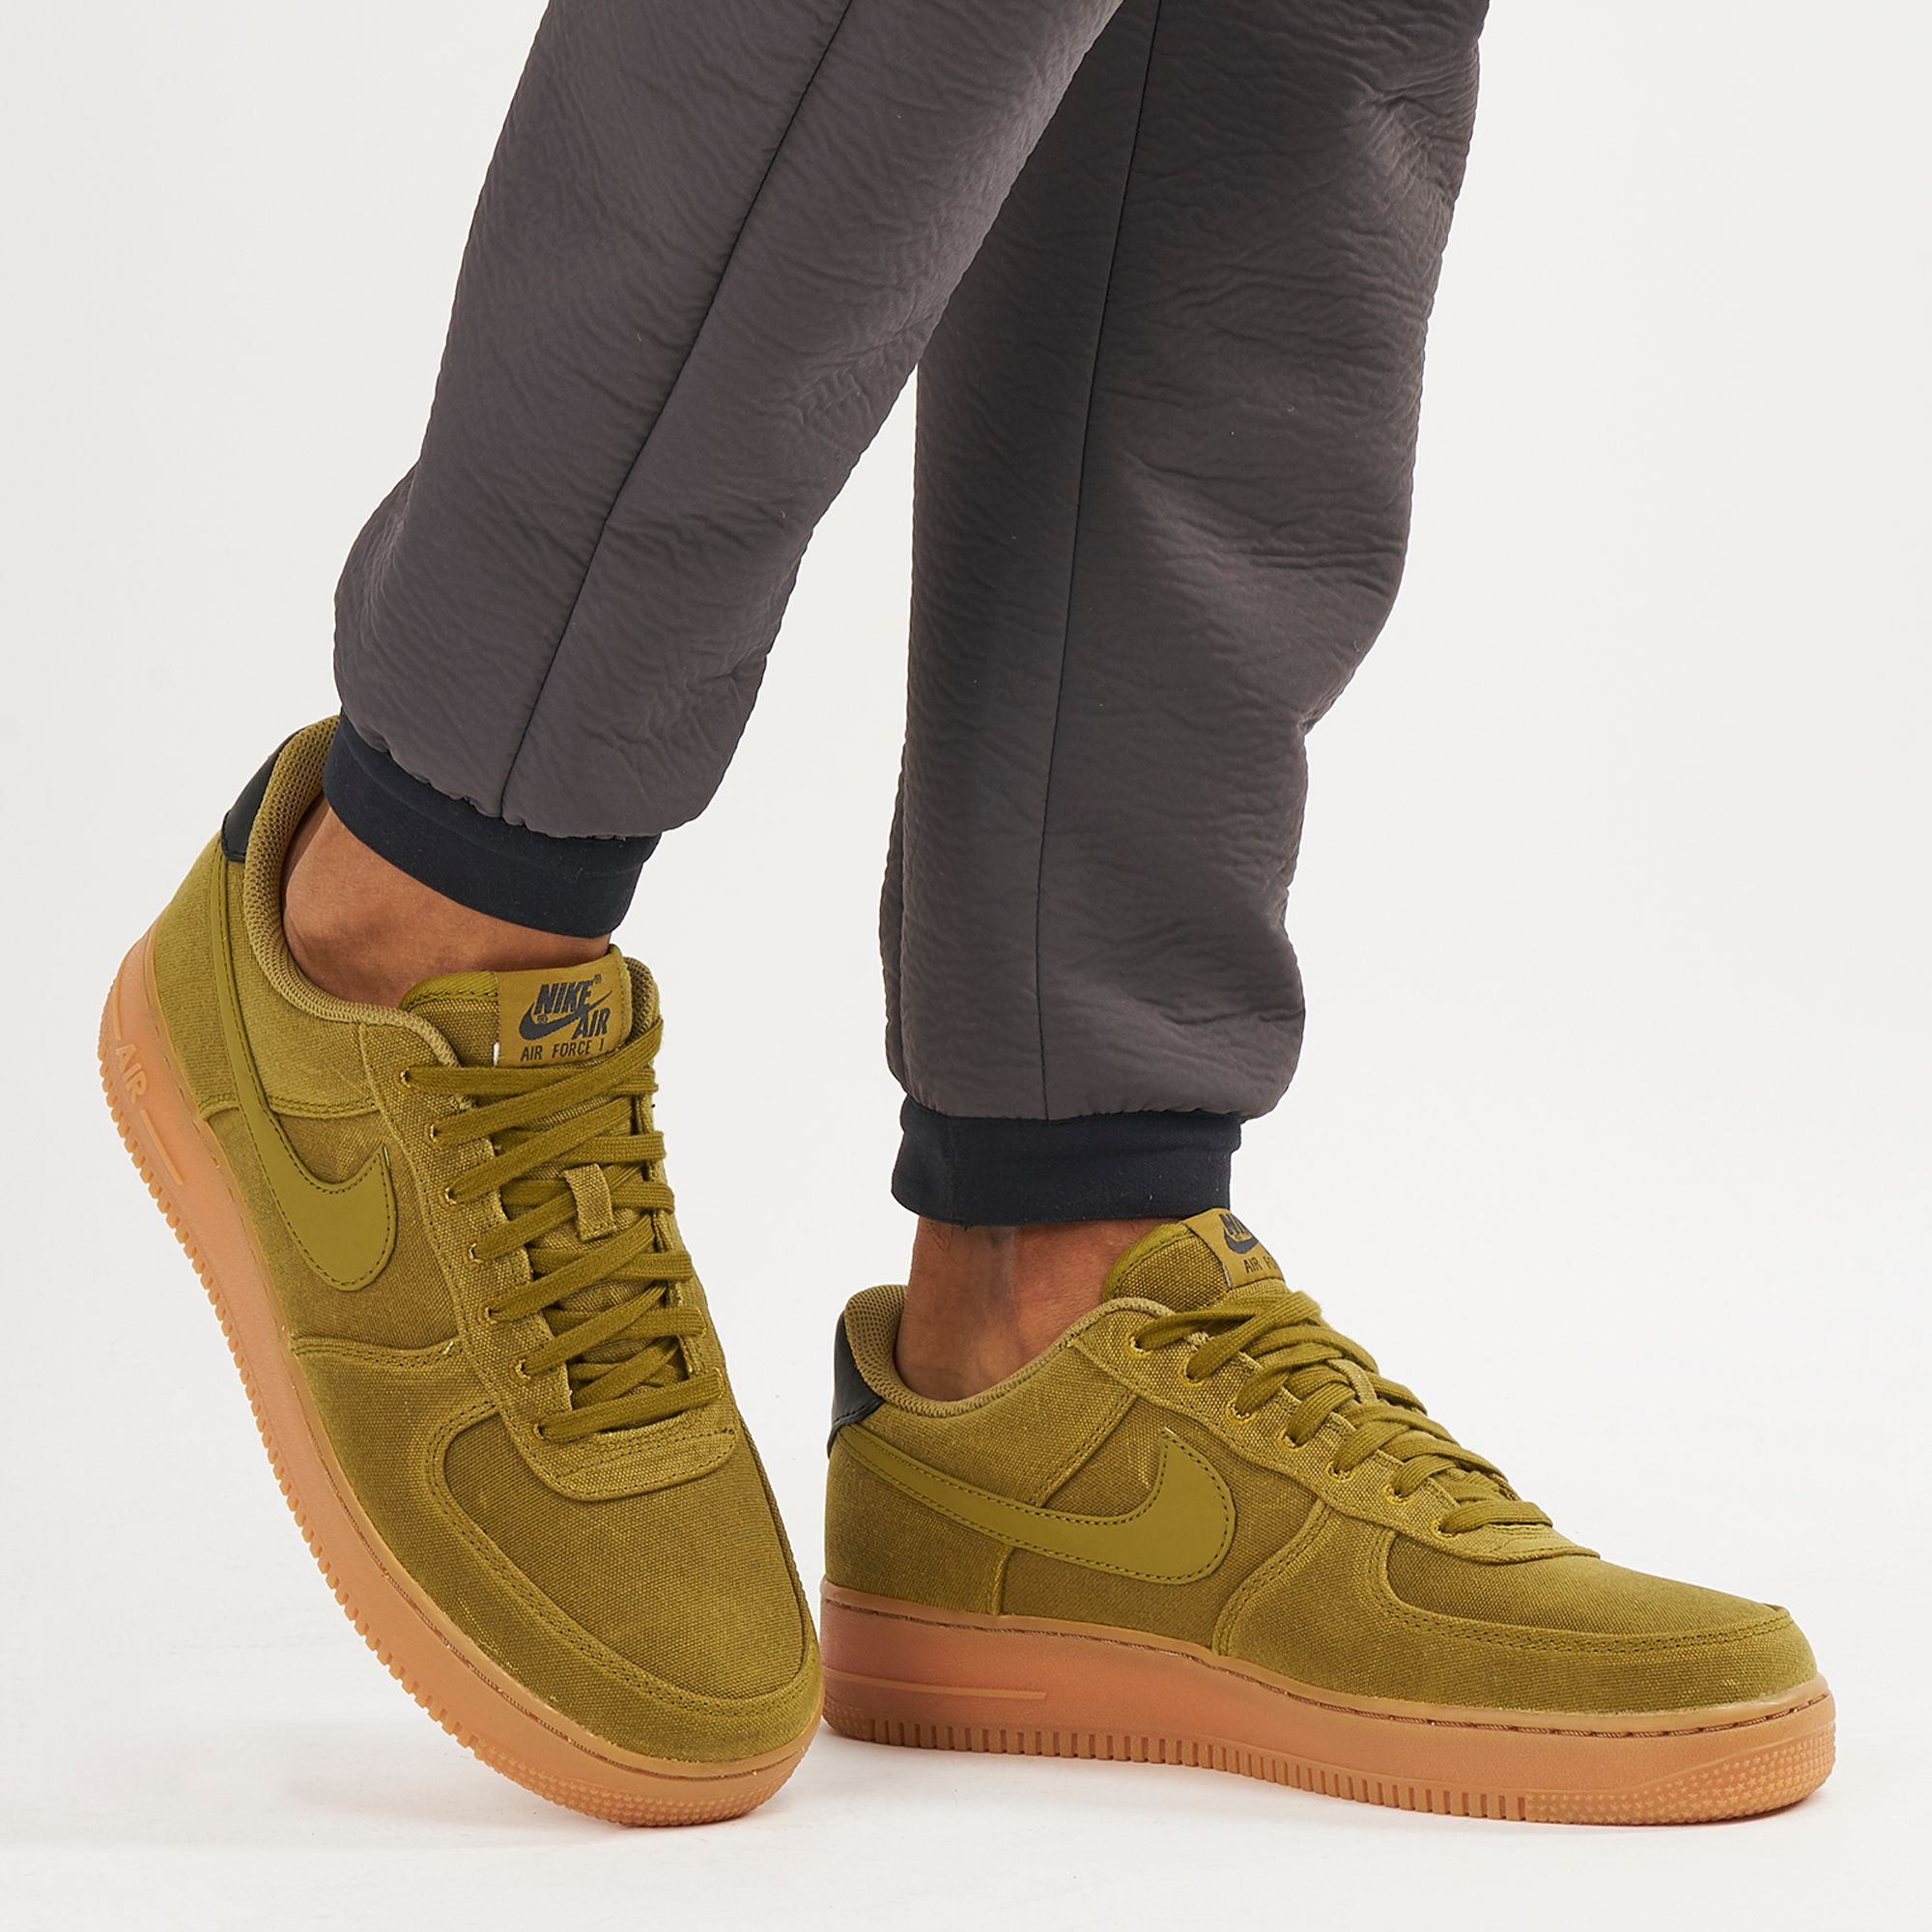 Nike Air Force 1 '07 Lv8 Style Shoe | Sneakers | Shoes